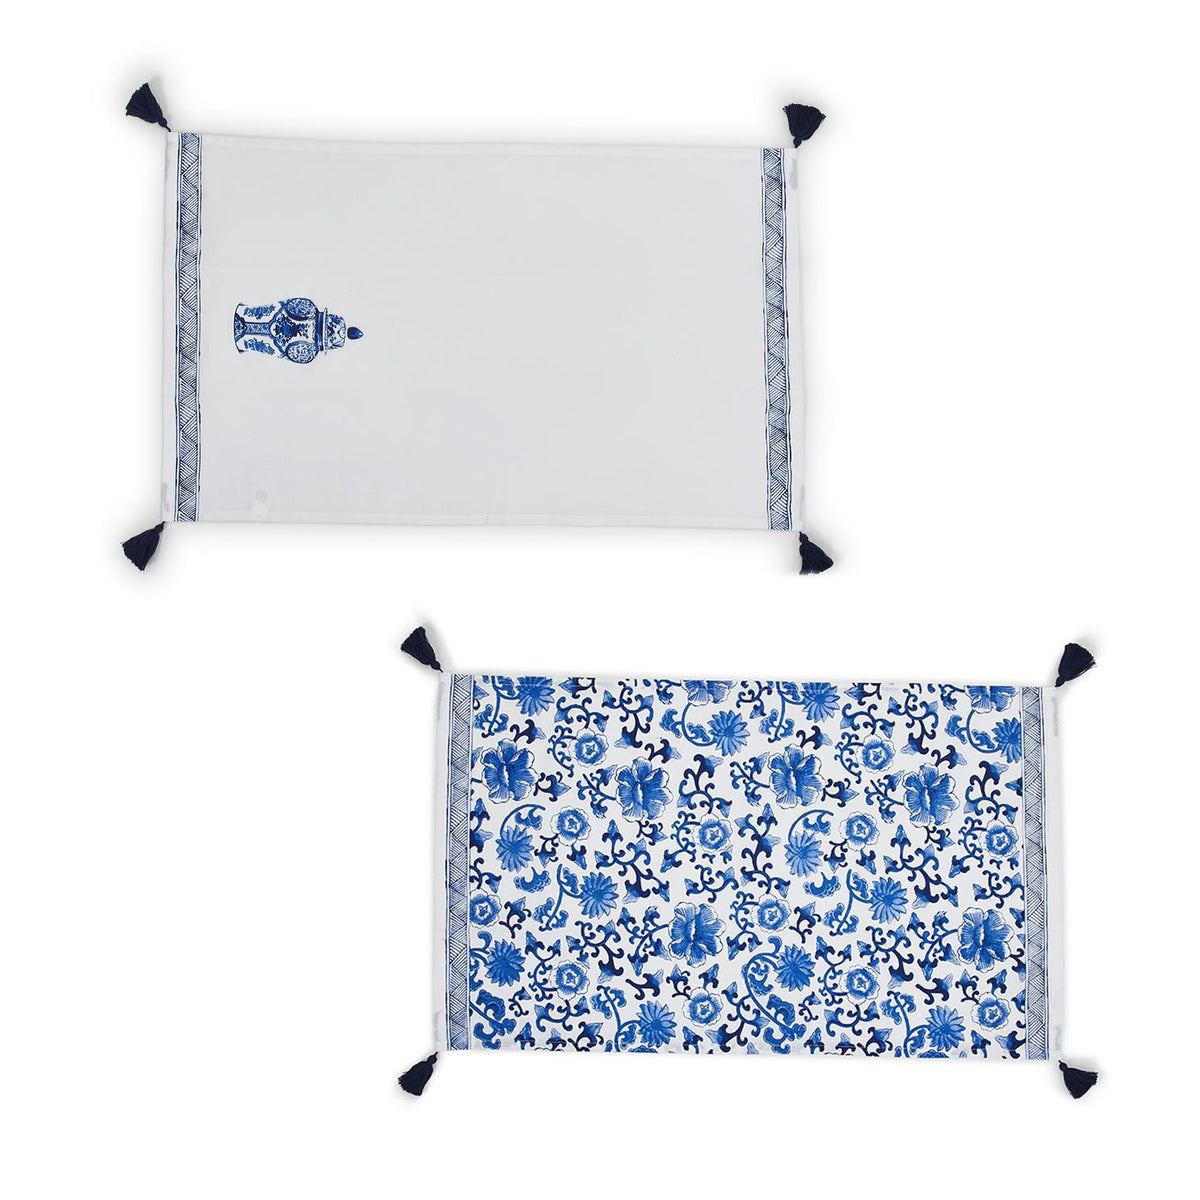 Chinoiserie Blue and White Set of 2 Dish Towels